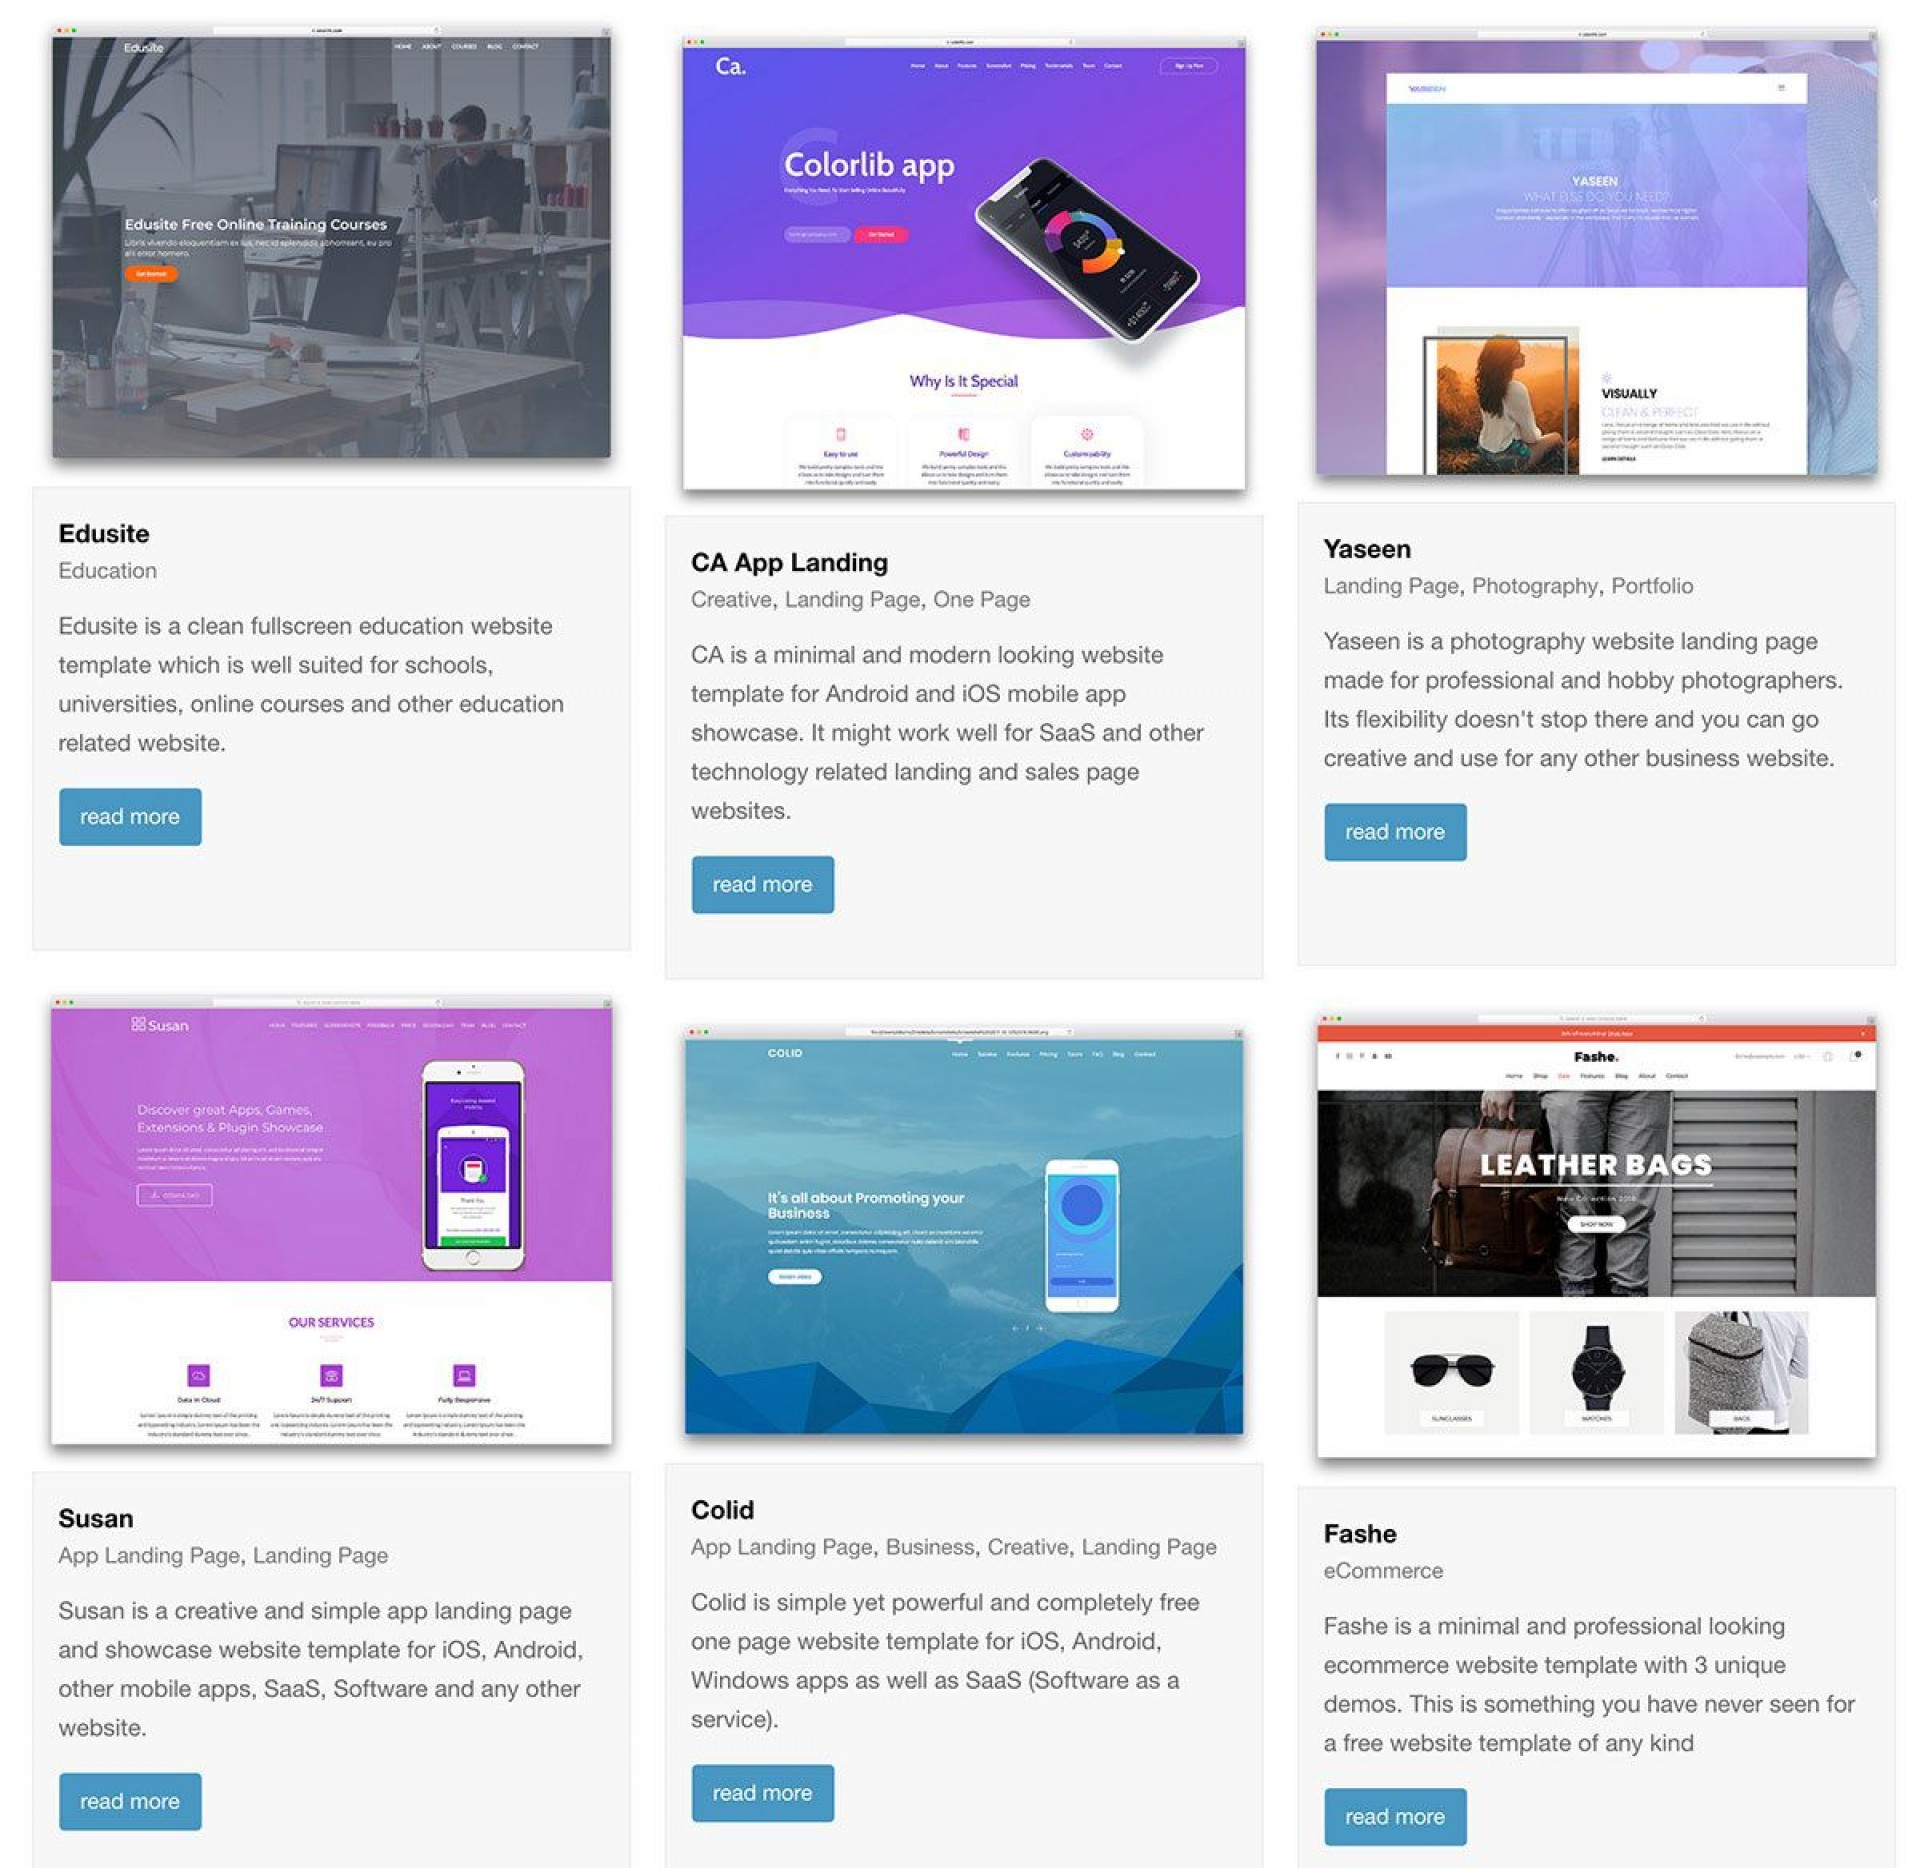 003 Fascinating Website Template Html Code Free Download Inspiration 1920